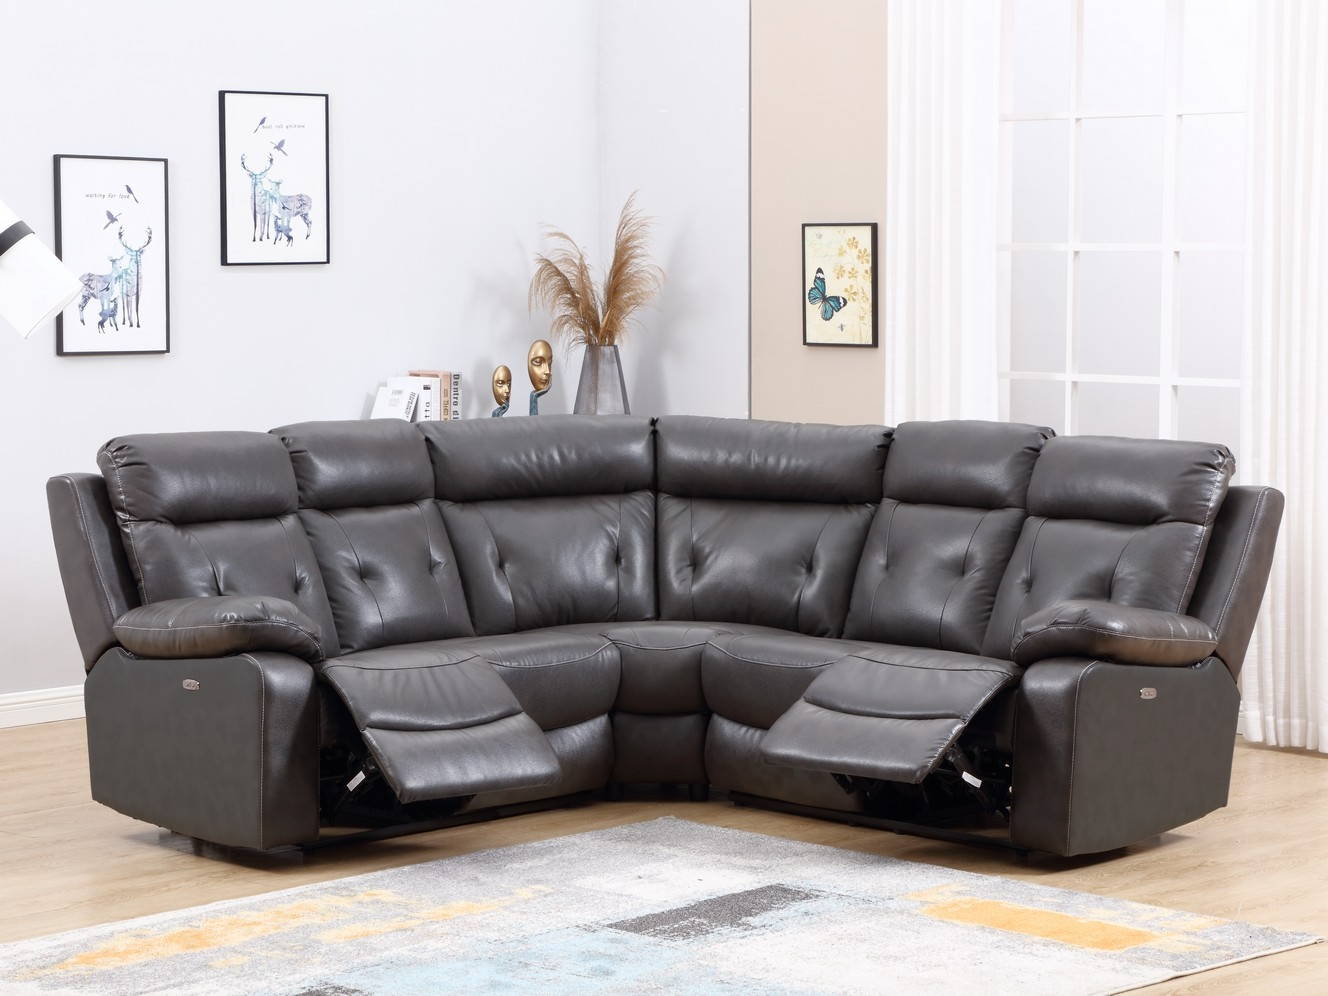 160 X 38  X 40 Modern Dark Gray Leather Sectional With Power Recliners